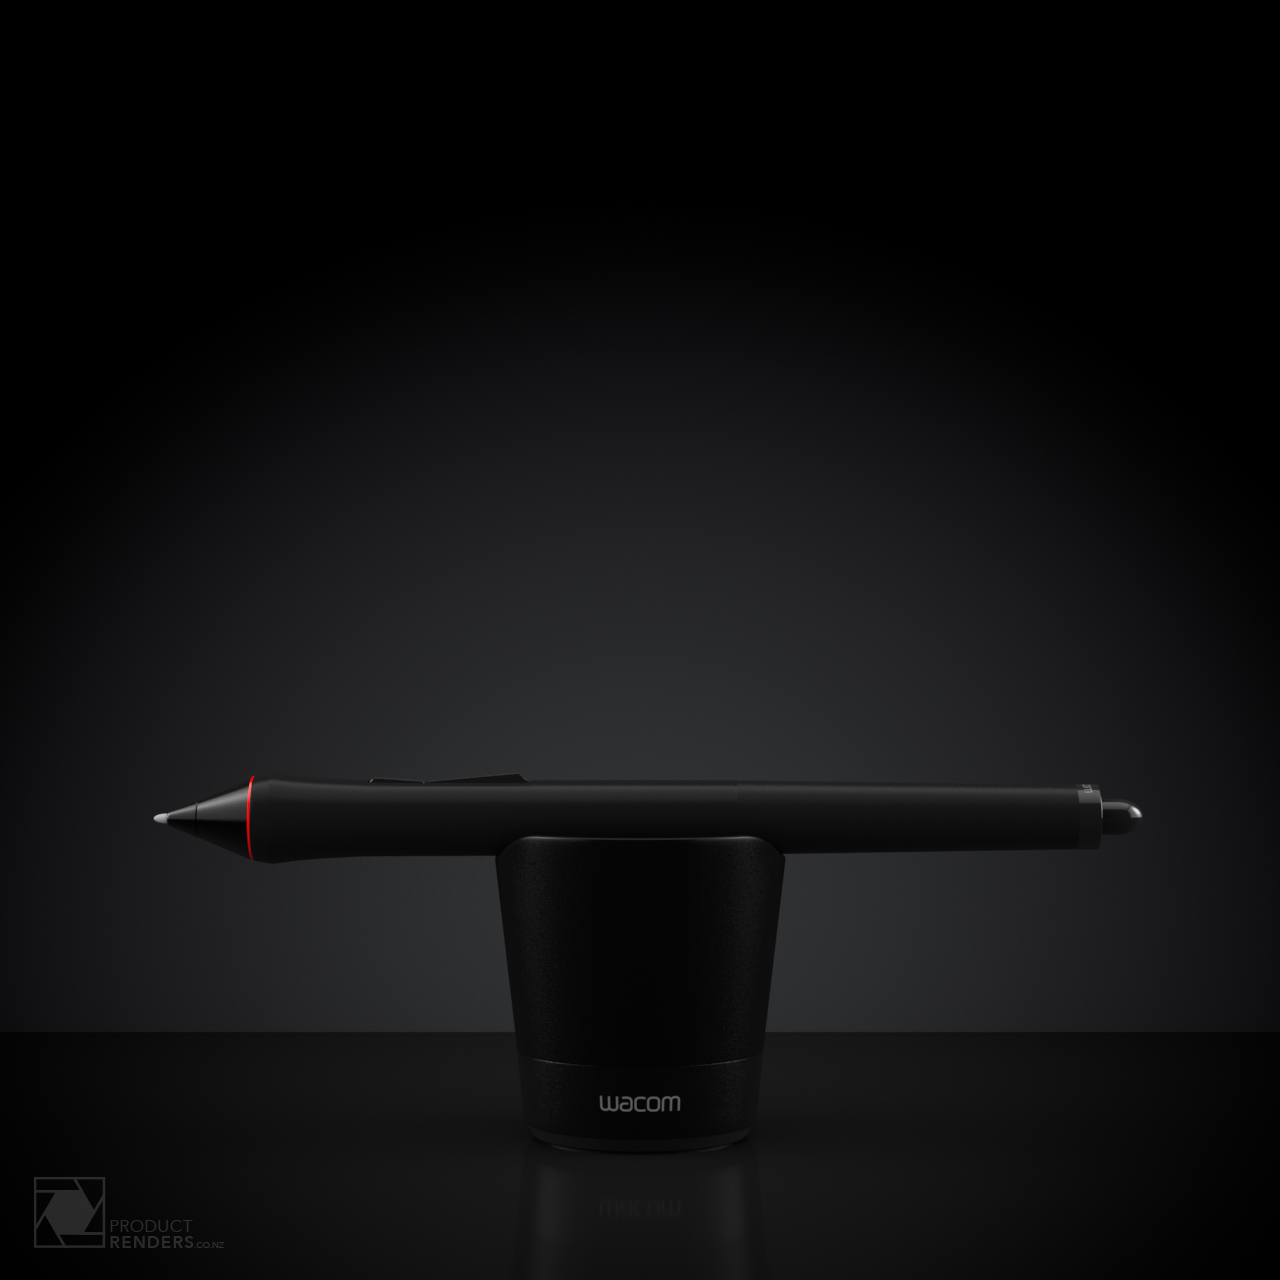 3D render of a Wacom 4 pen and closed stand